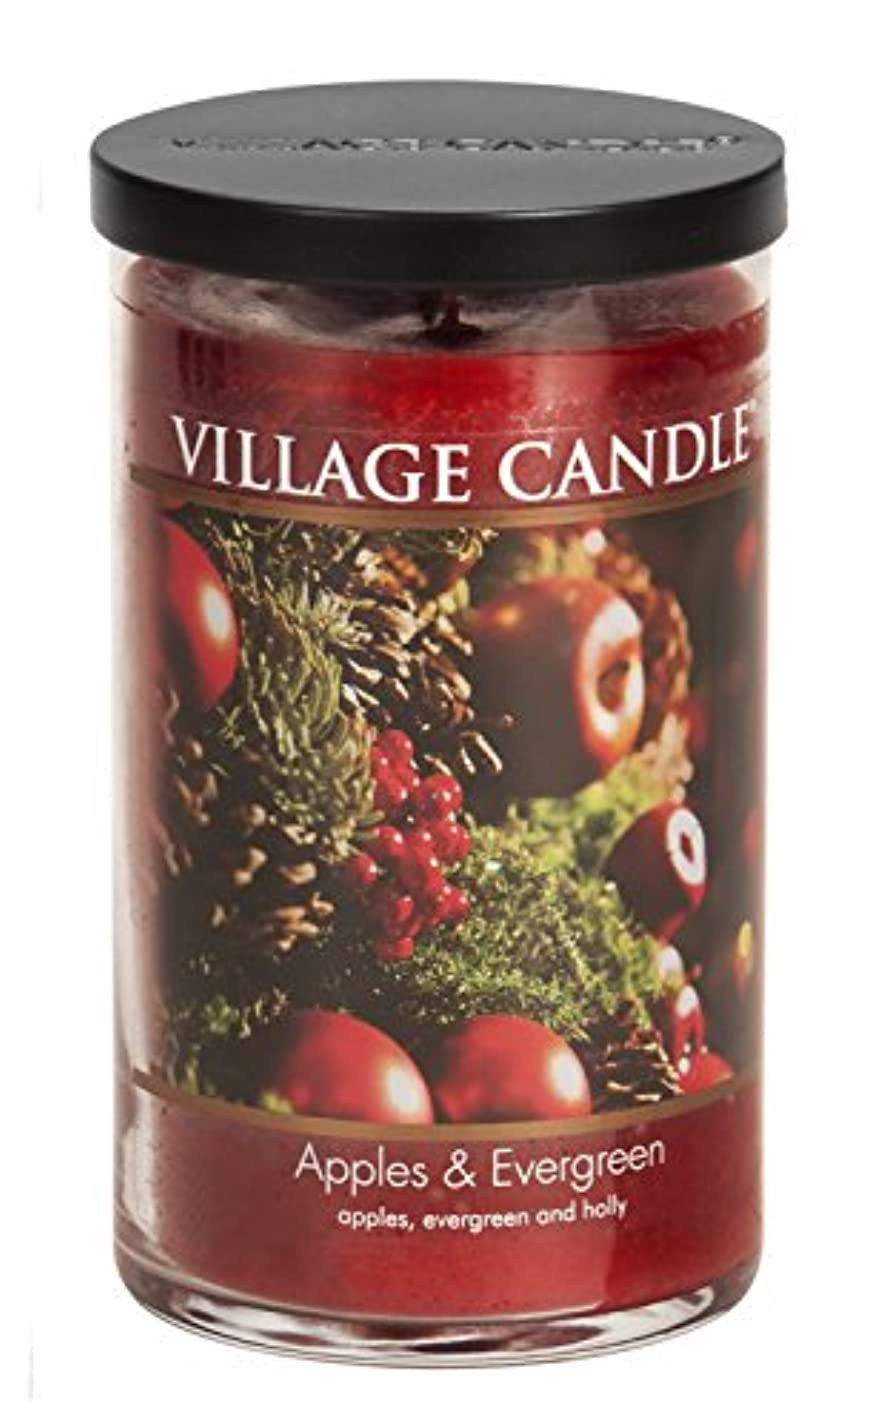 乗算労働ほこりVillage Candle Apples & Evergreen 24 ozガラスタンブラーScented Candle, Large